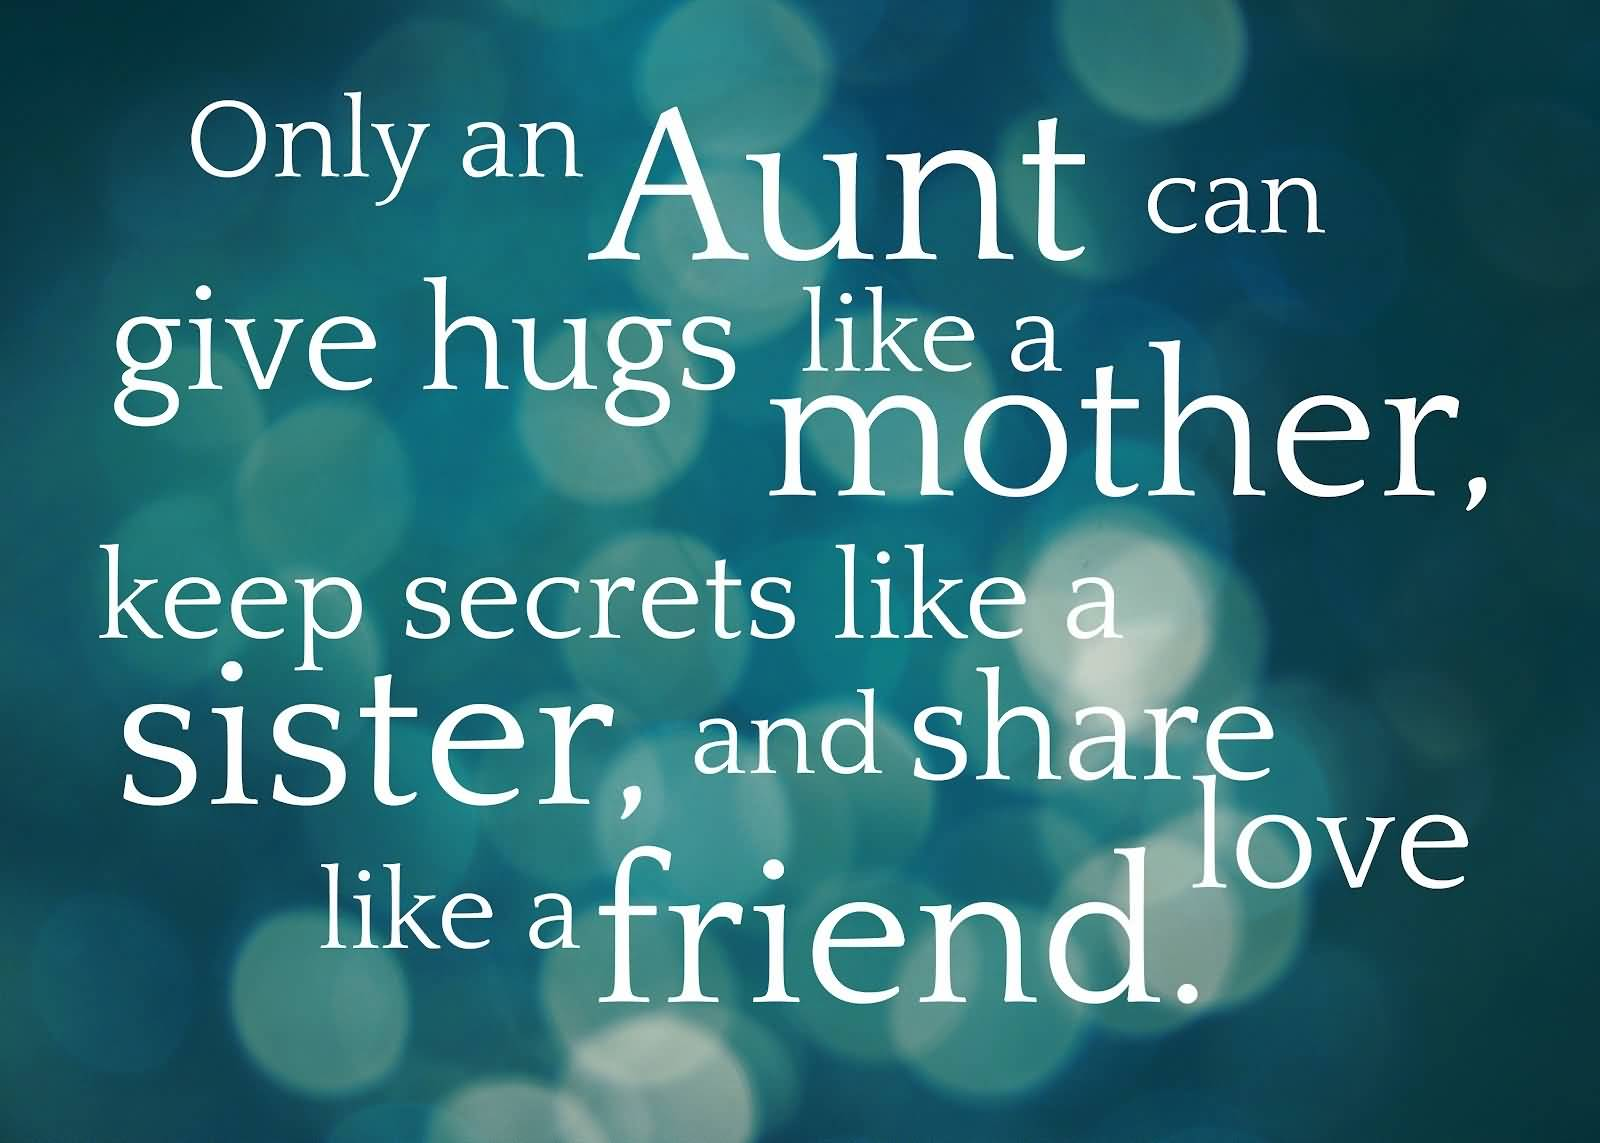 Cute Nephew Quotes Only An Aunt Can | QuotesBae